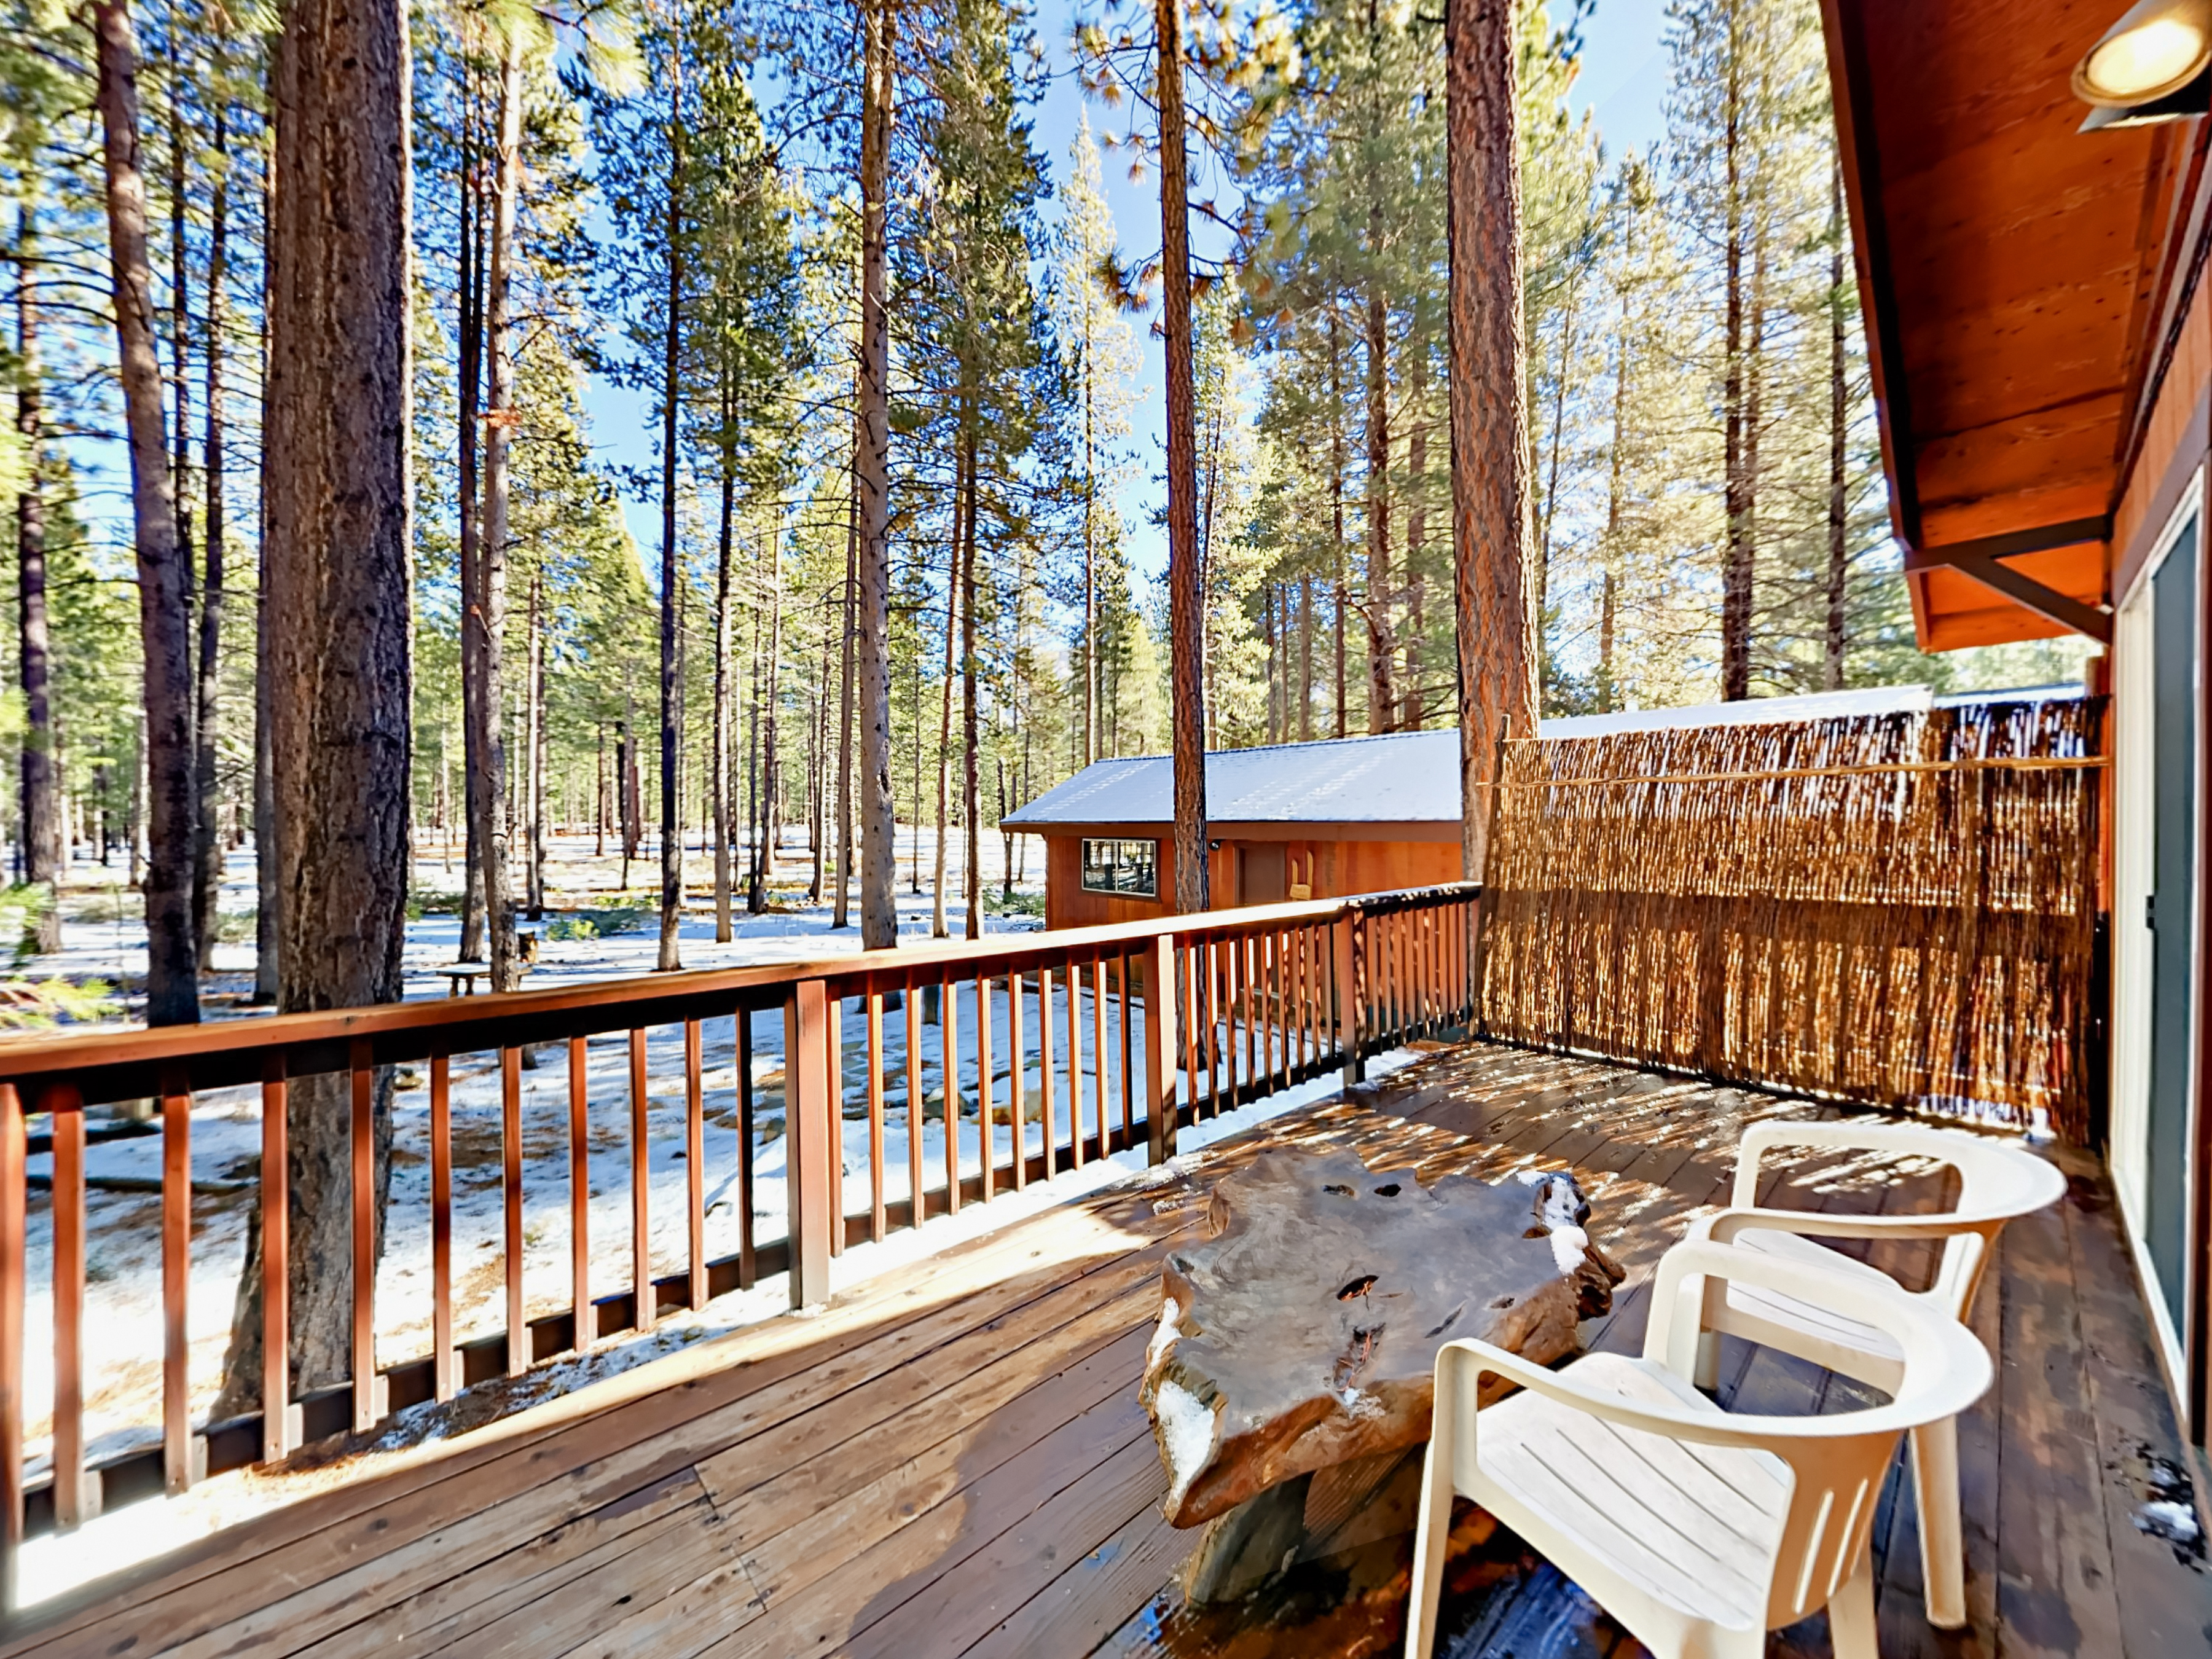 road rentals cabins gonowabie featured lakefront tahoe properties real lake crystal luxury high nv bay res rd of estate